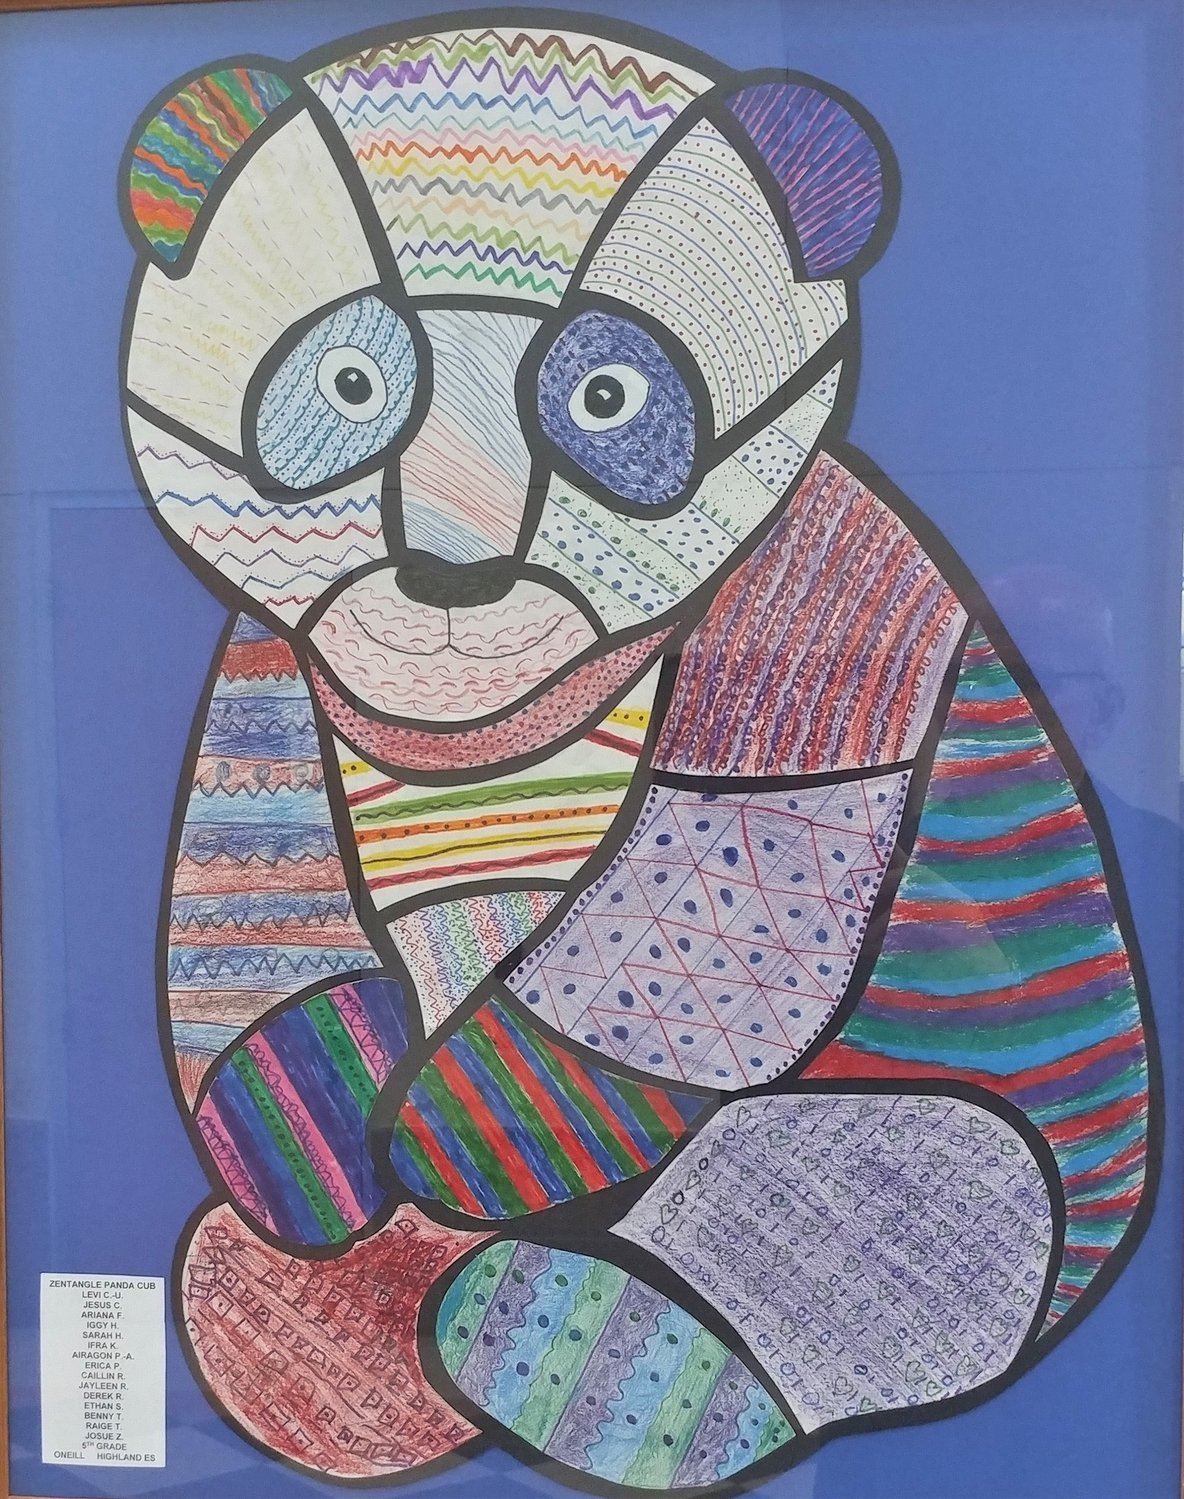 Zentagle Panda Cub, by Levi C.-U., Jesus C., Ariana F., Iggy H., Sarah H., Ifra K., Airagon P.-A., Erica P. Caillin R., Jayleen R., Derek R., Ethan S., Benny T., Raige T. and Josue Z., fifth graders at Highland Elementary School.